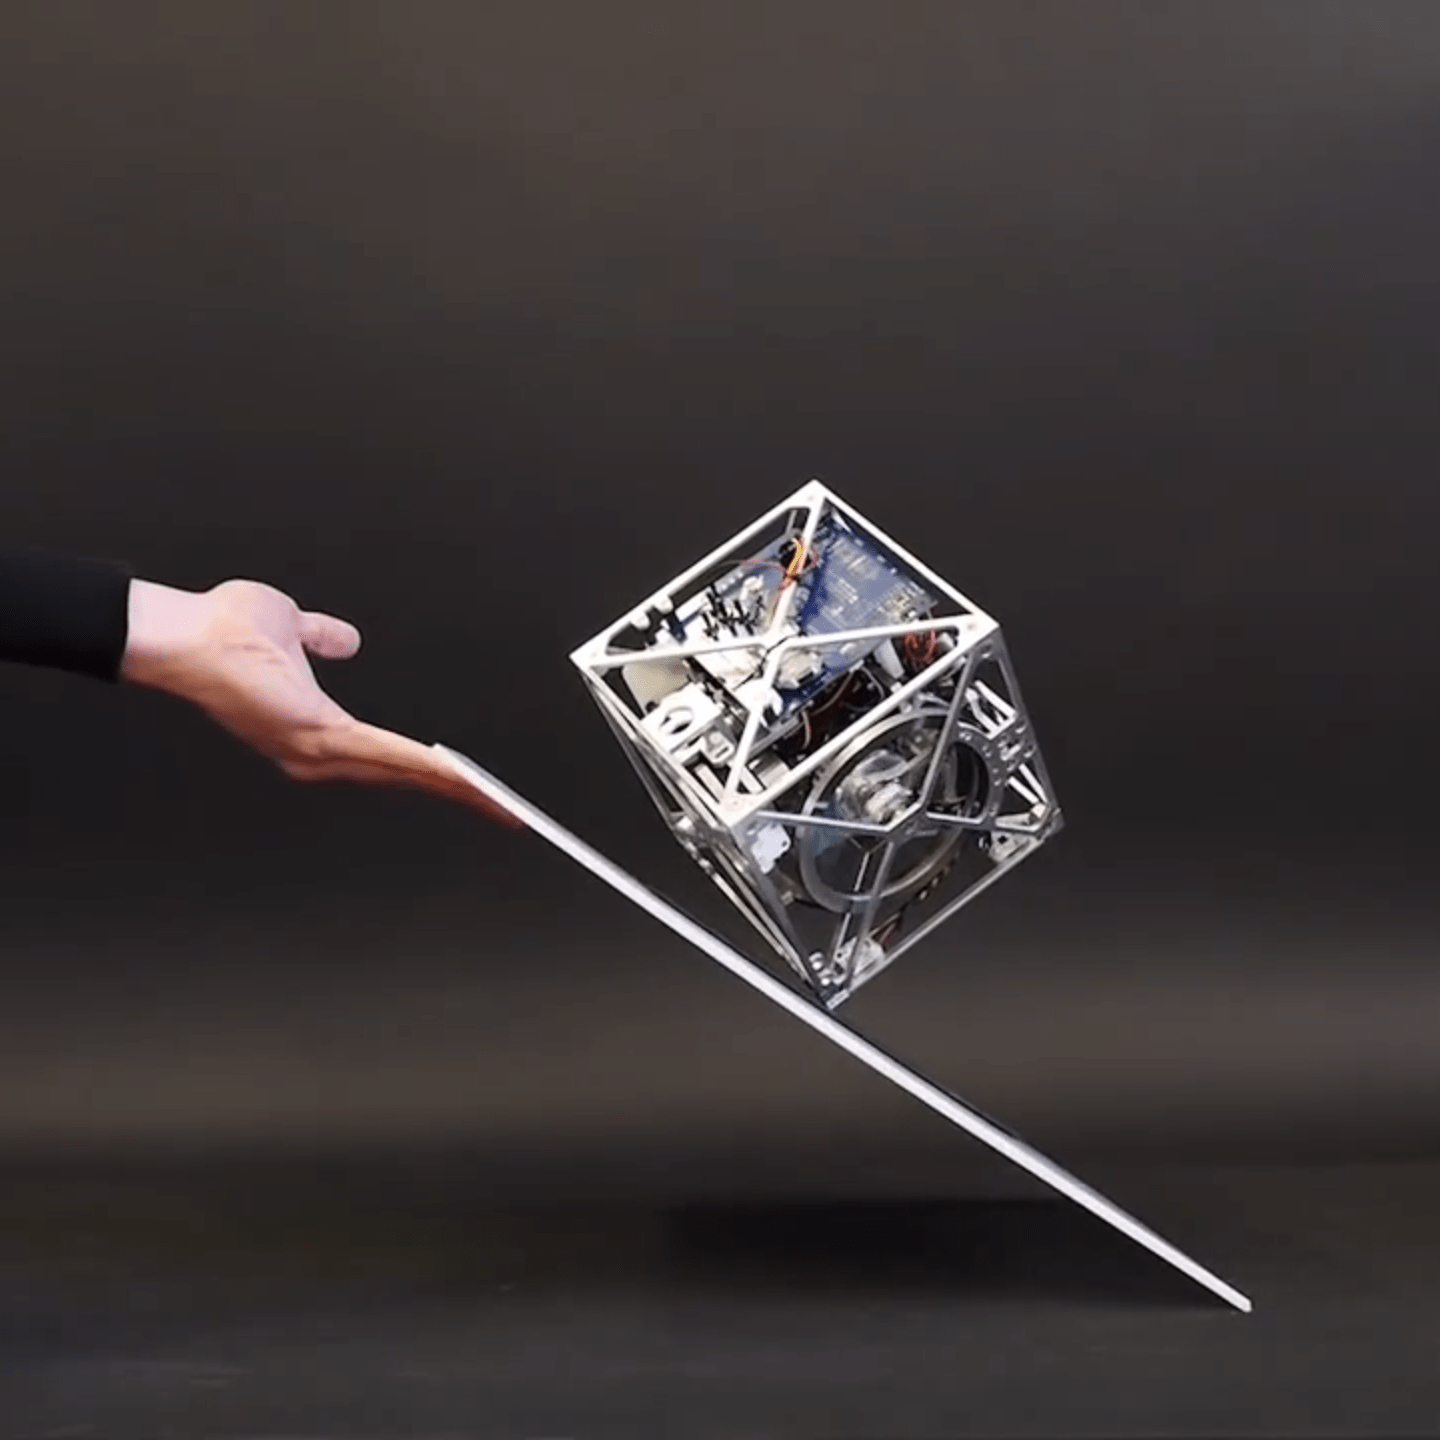 Cubli: The Cube That Can Walk and Jump